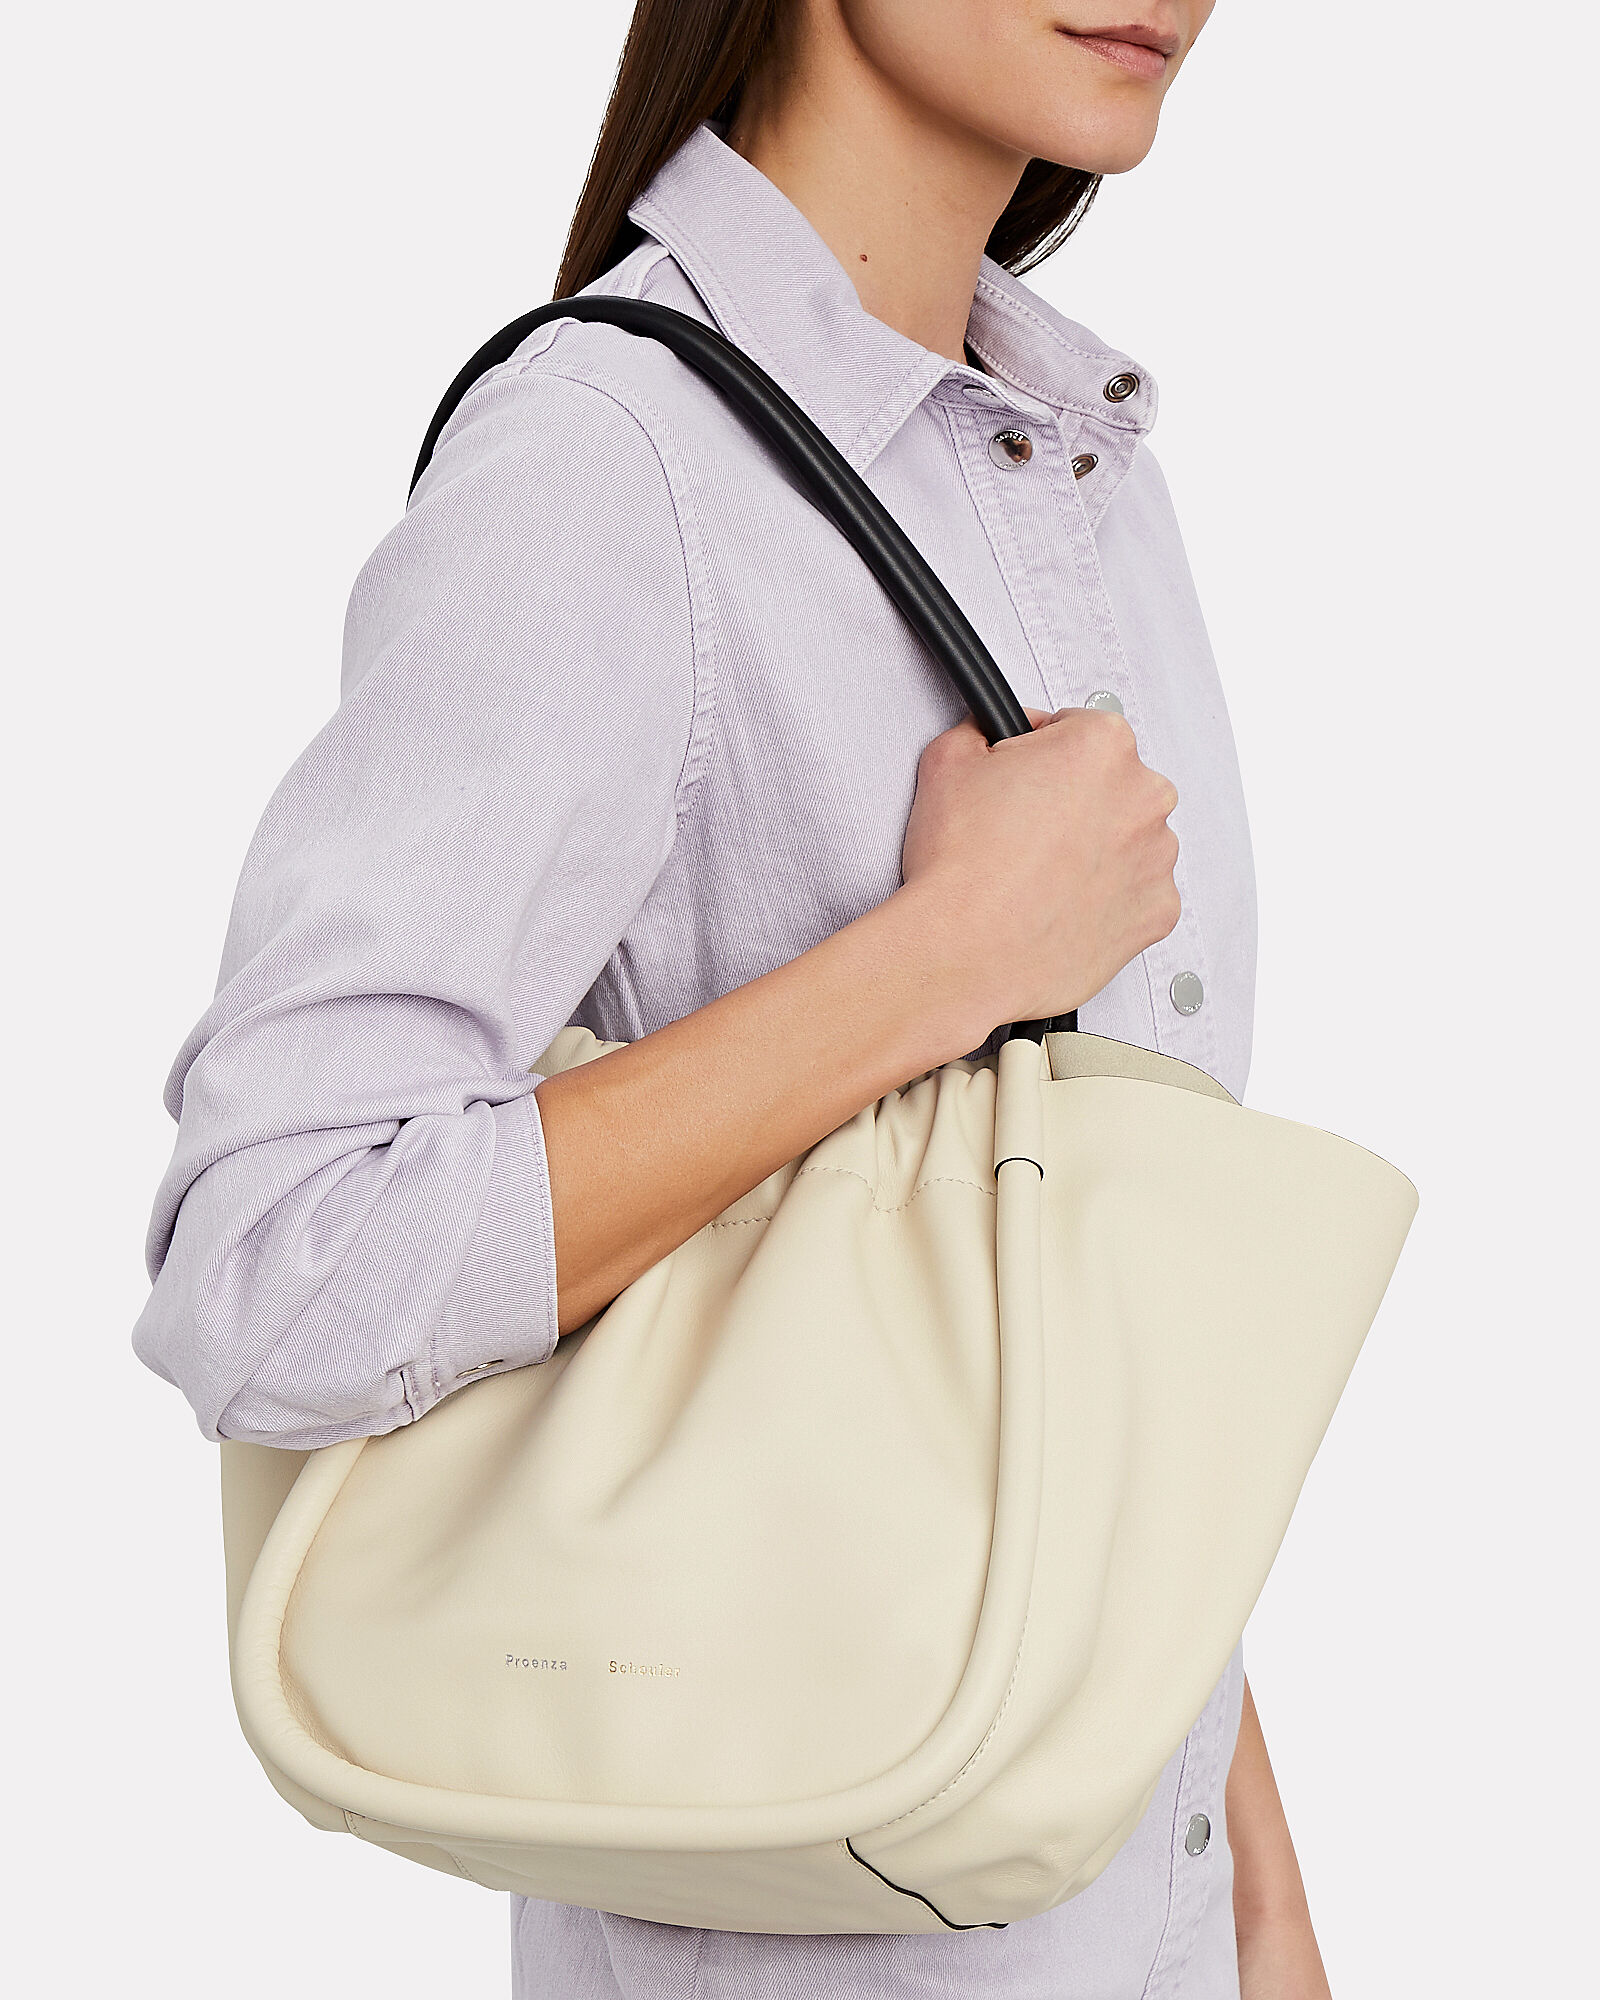 Ruched L Tote, IVORY, hi-res